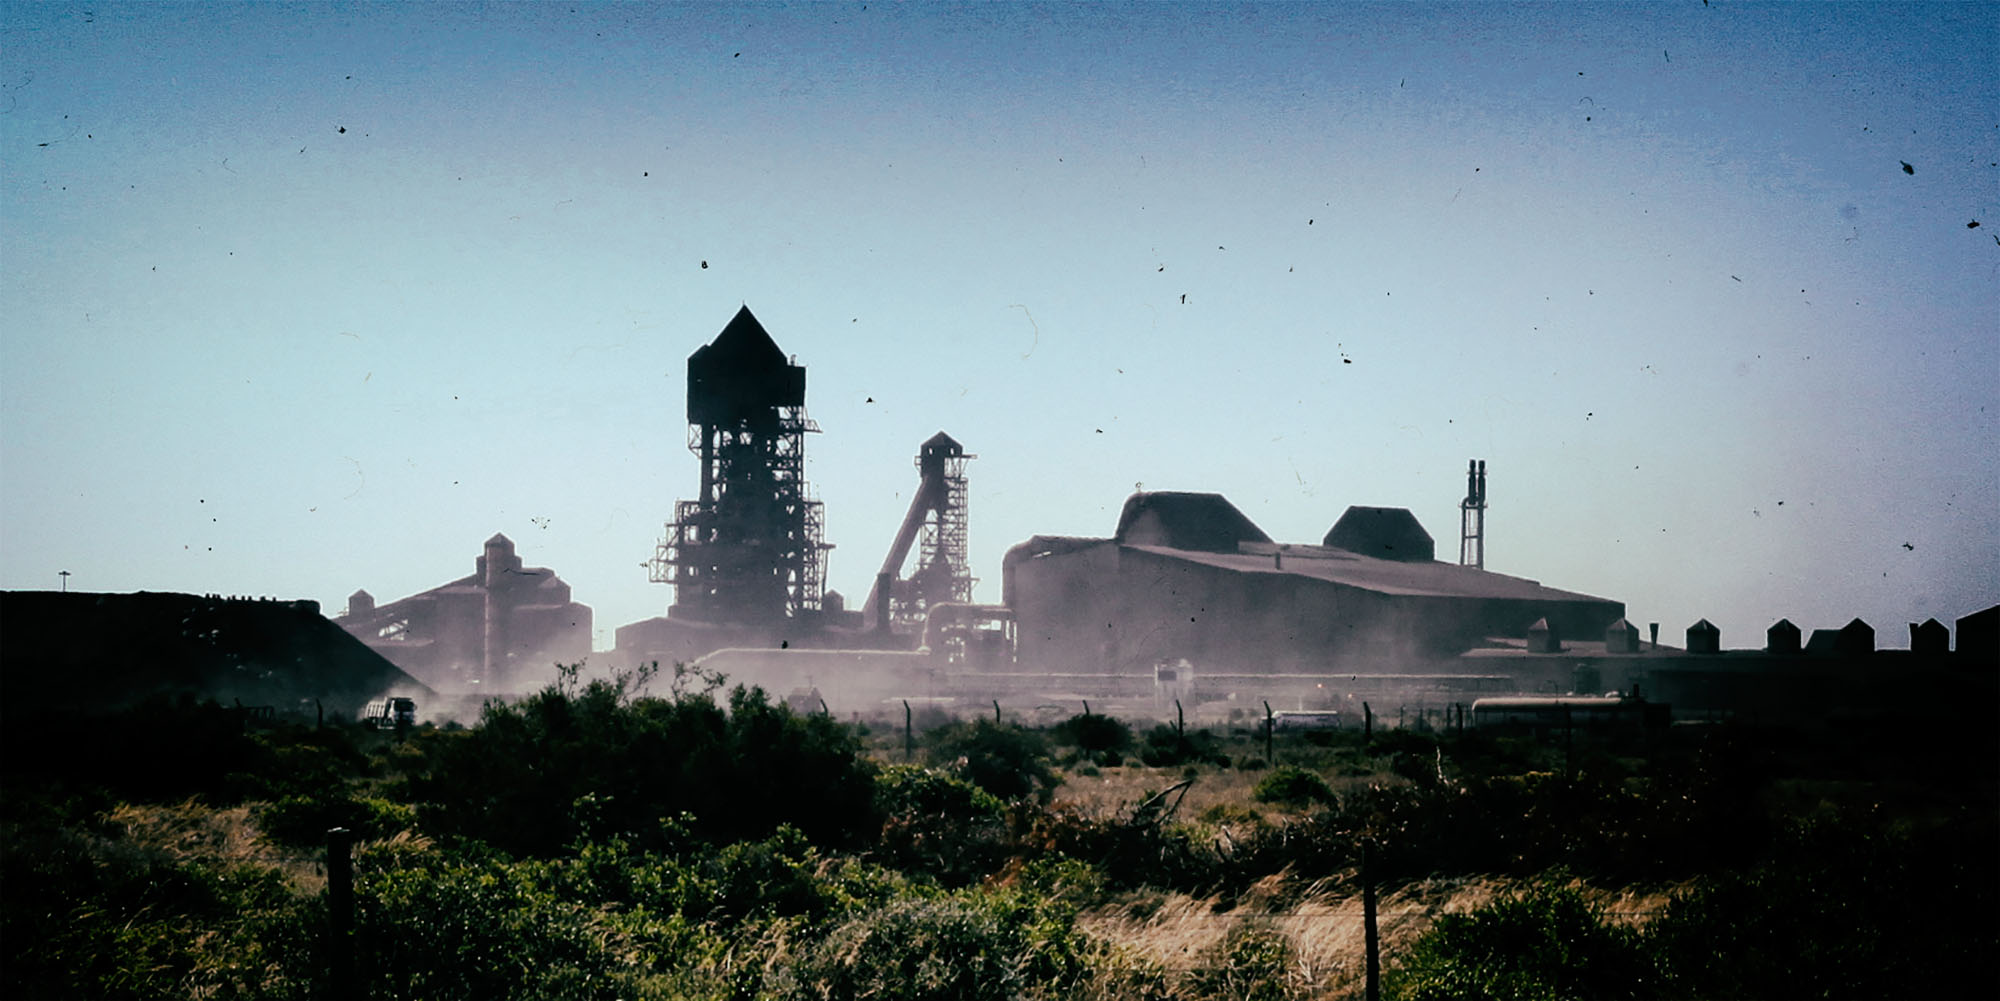 Saldanha community to pay heavy price as 568 steel jobs disappear on West Coast - Daily Maverick